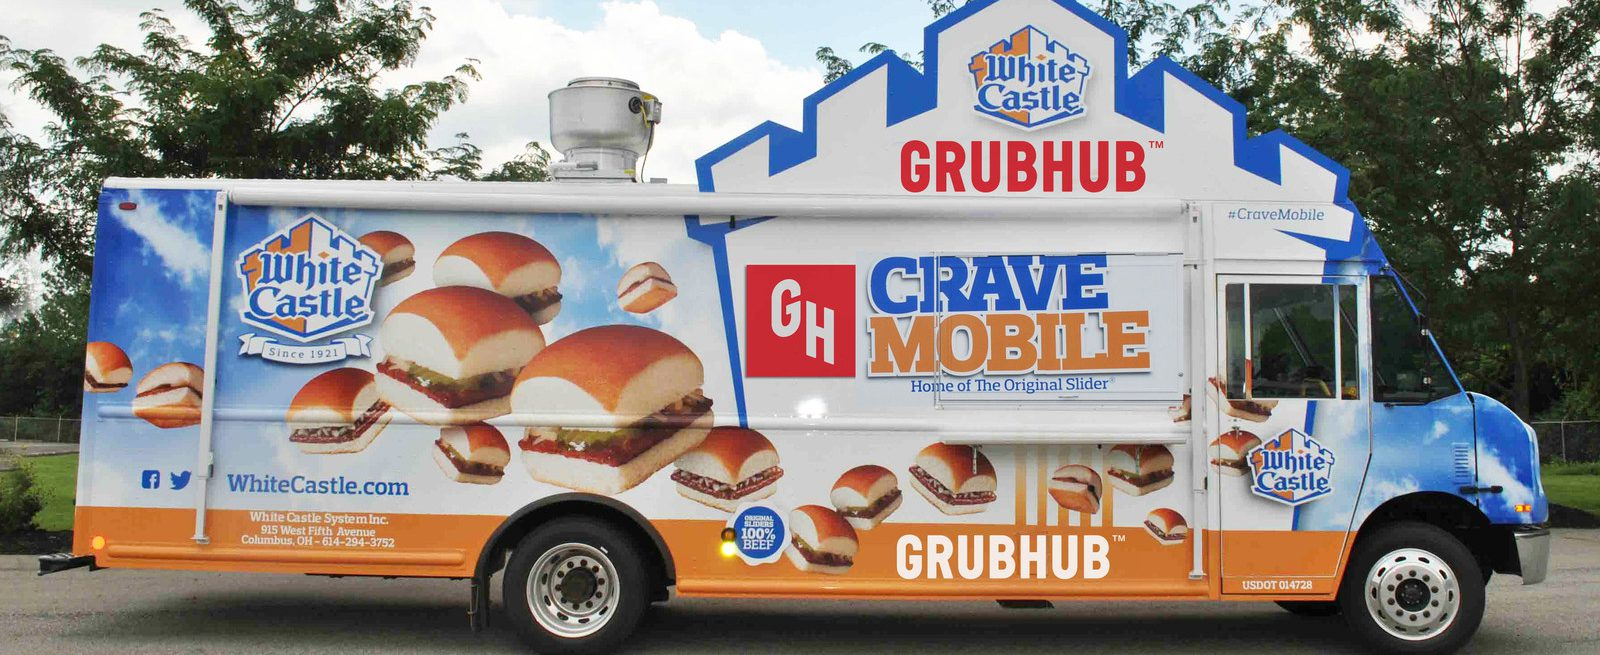 white castle on grubhub and design leaders join forces. Black Bedroom Furniture Sets. Home Design Ideas